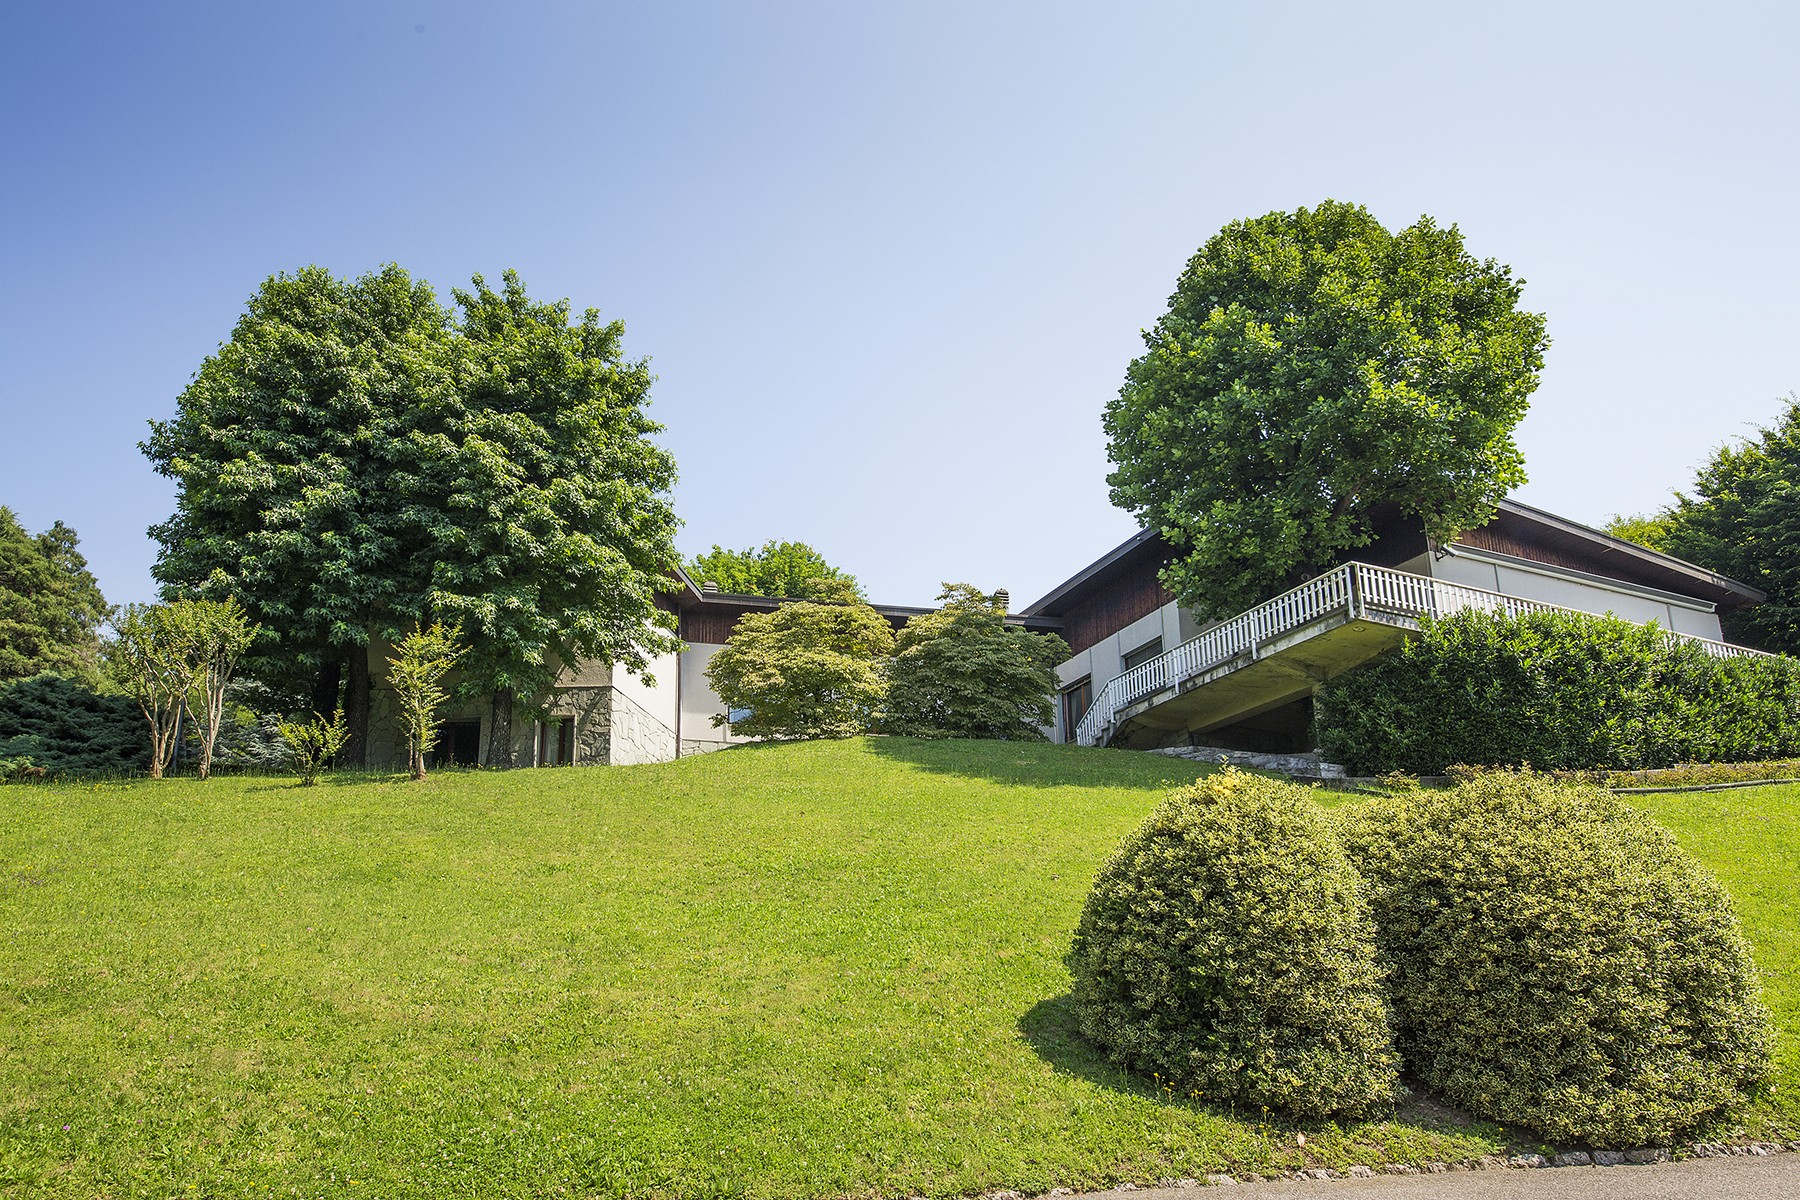 Single Family Home for Sale at Delightful modern villa with lake views Via Crotto Urago Other Como, Como 22030 Italy